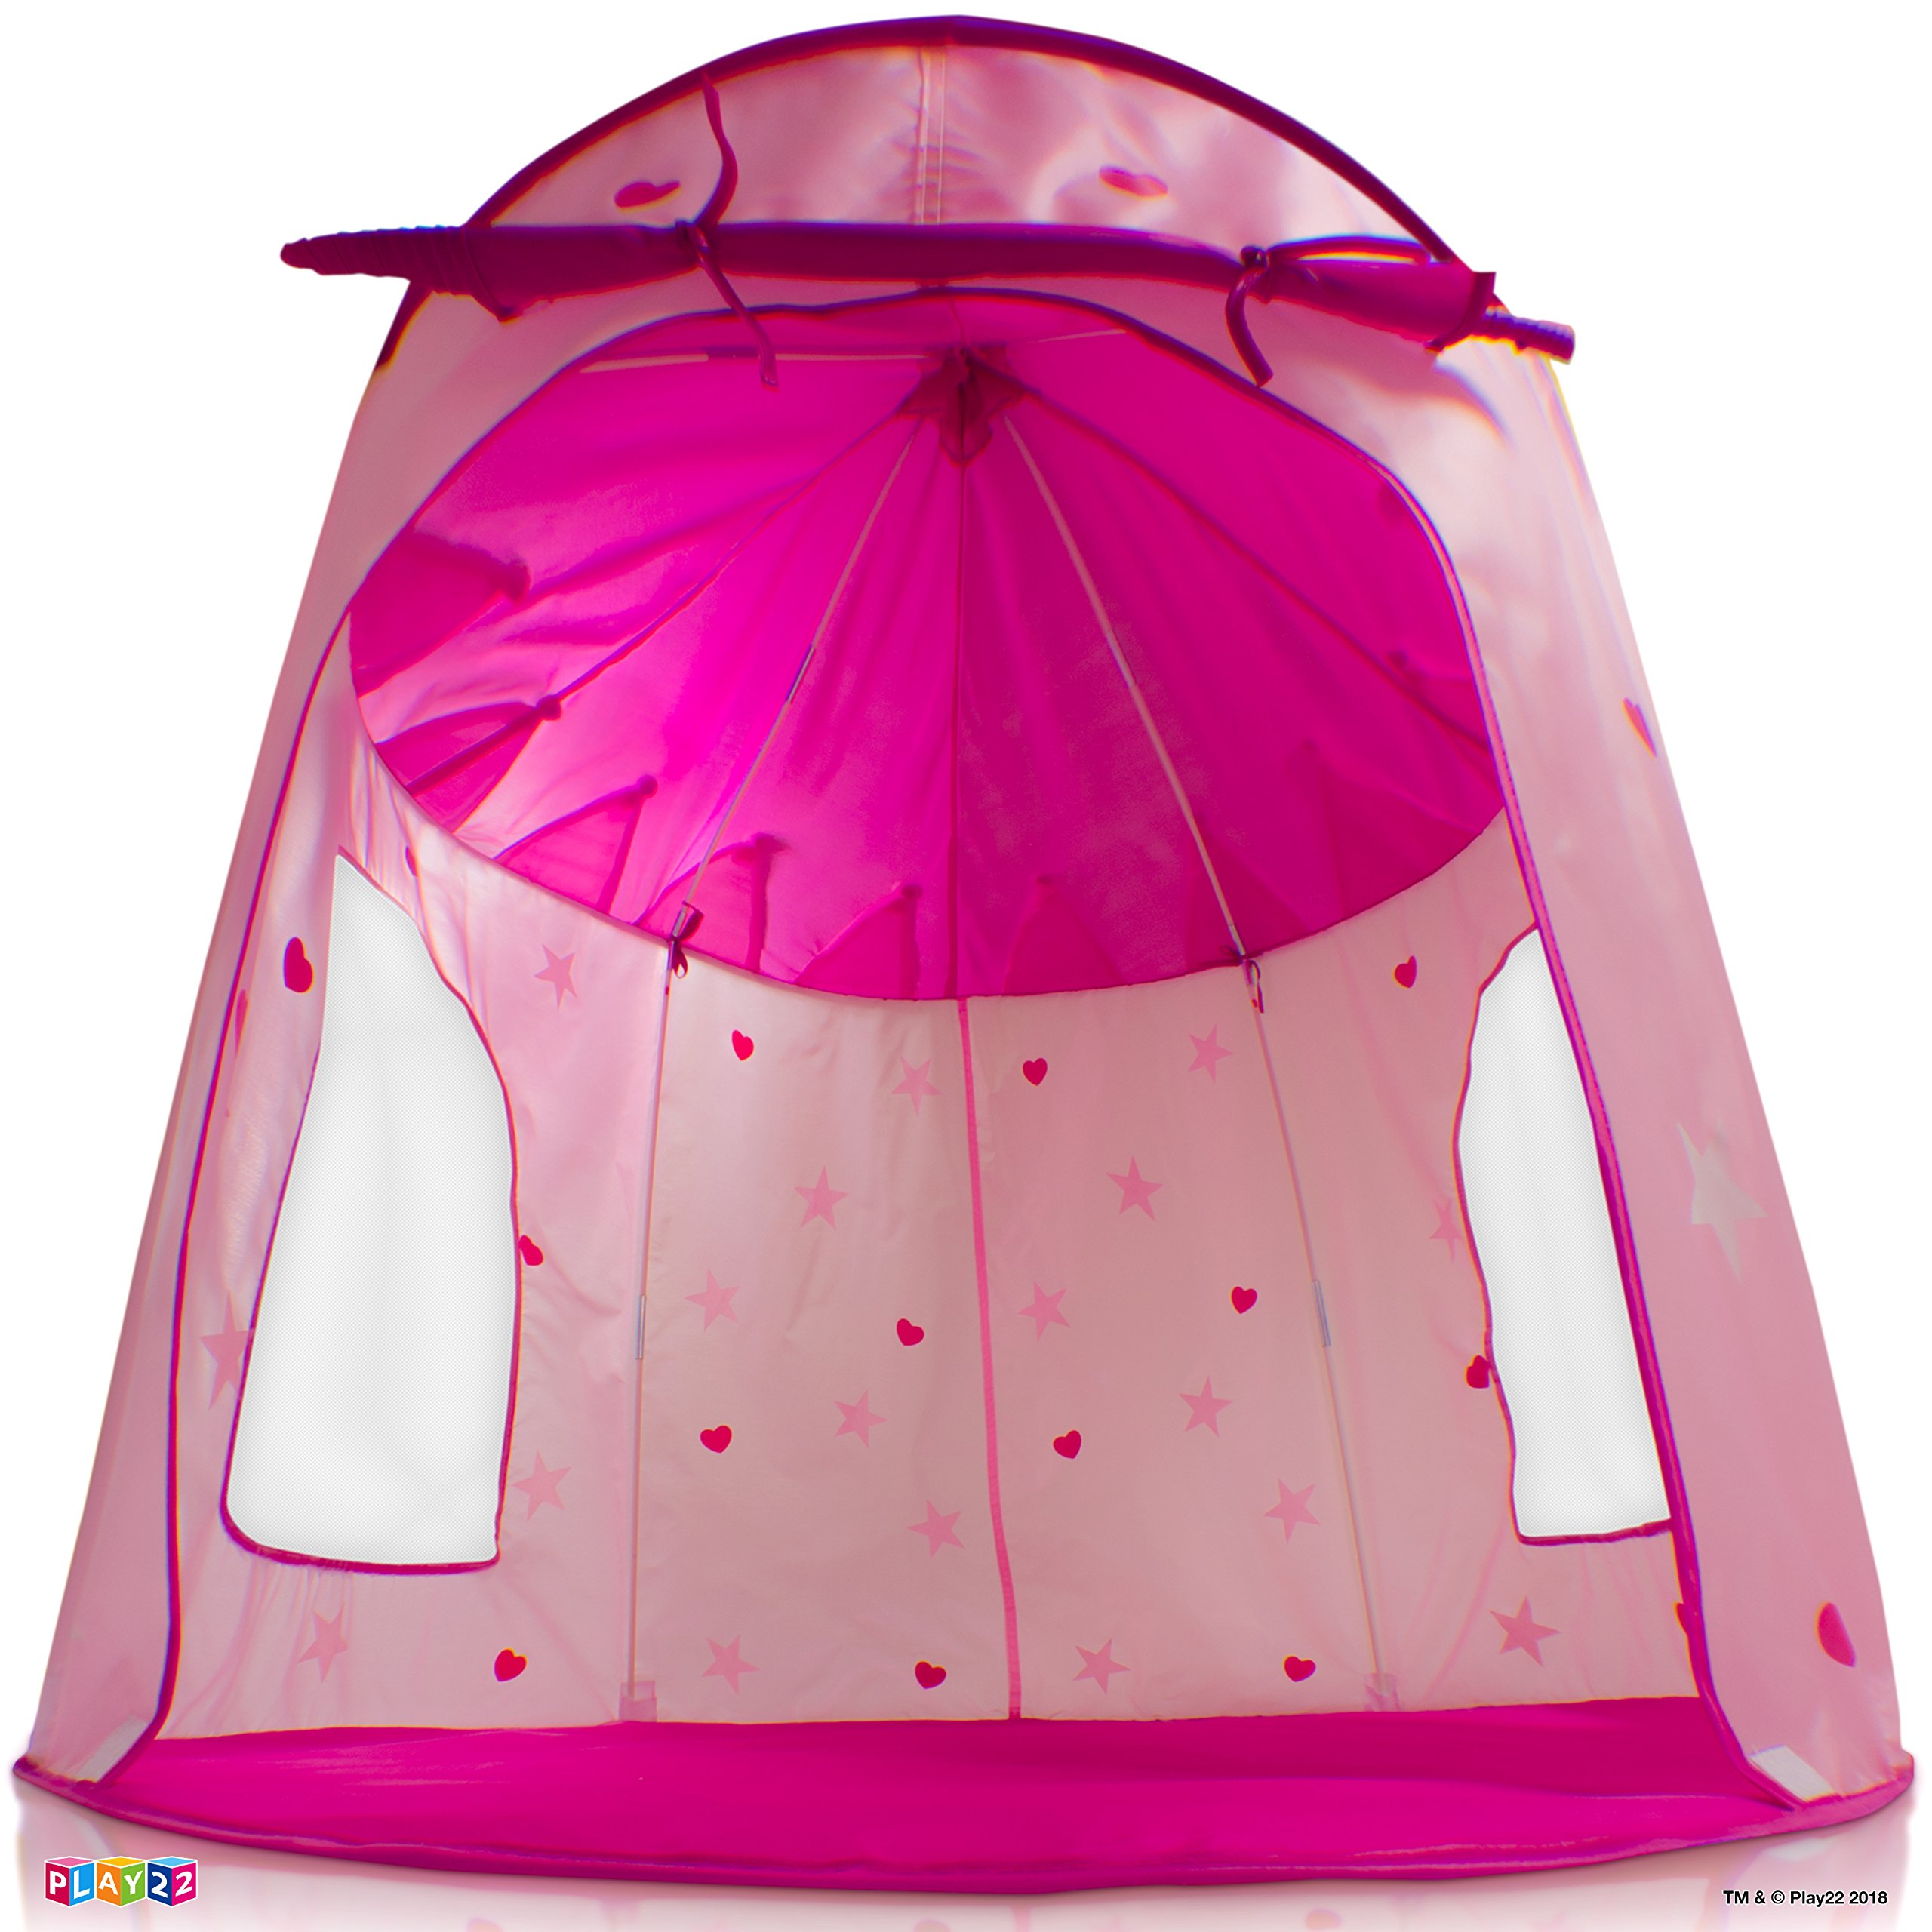 Play22 Play Tent Princess Castle Pink - Kids Tent Features Glow in The Dark Stars - Portable Kids Play Tent - Kids Pop Up Tent Foldable Into A Carrying Bag - Indoor and Outdoor Use - Original by Play22 (Image #6)